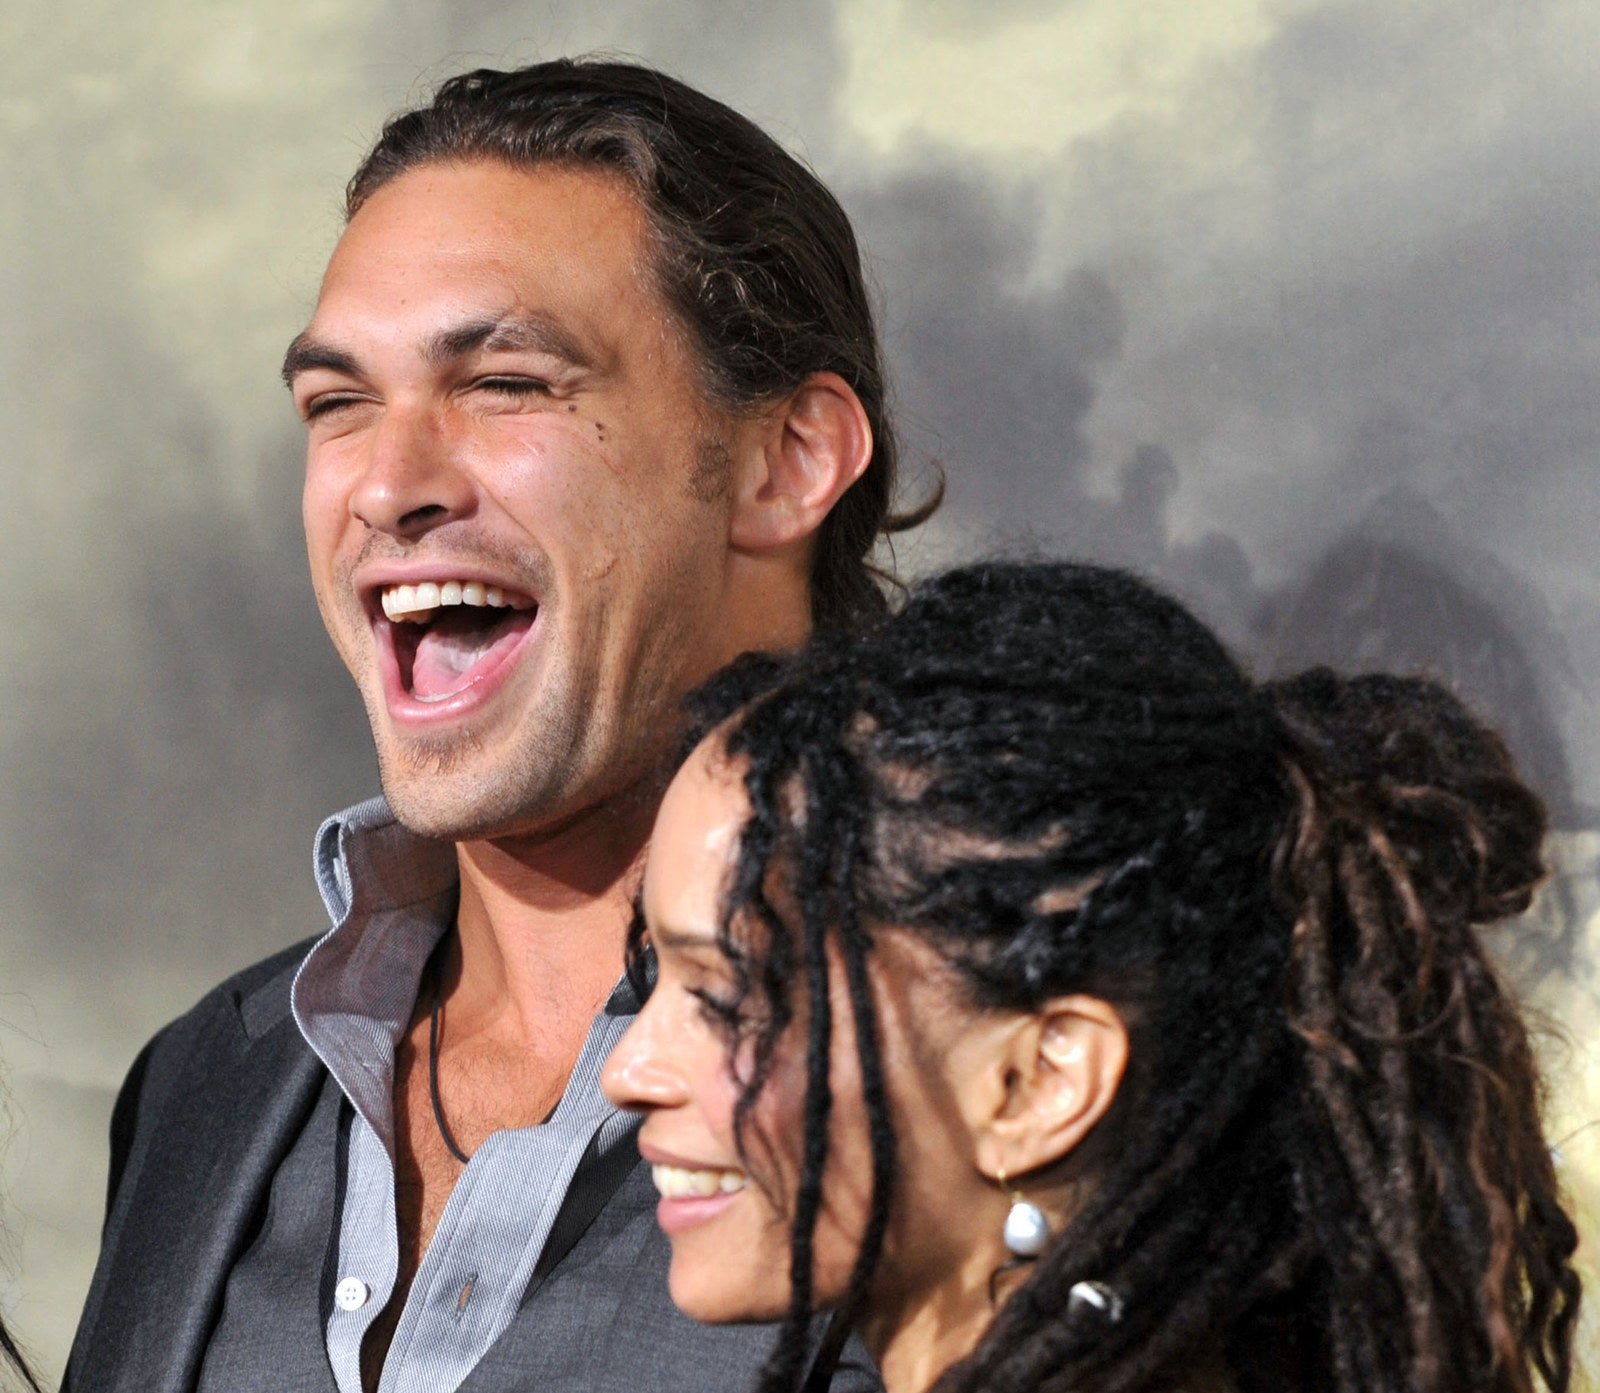 Jason Momoa Wedding: Jason Momoa Laughing Is Truly A Delight To Behold